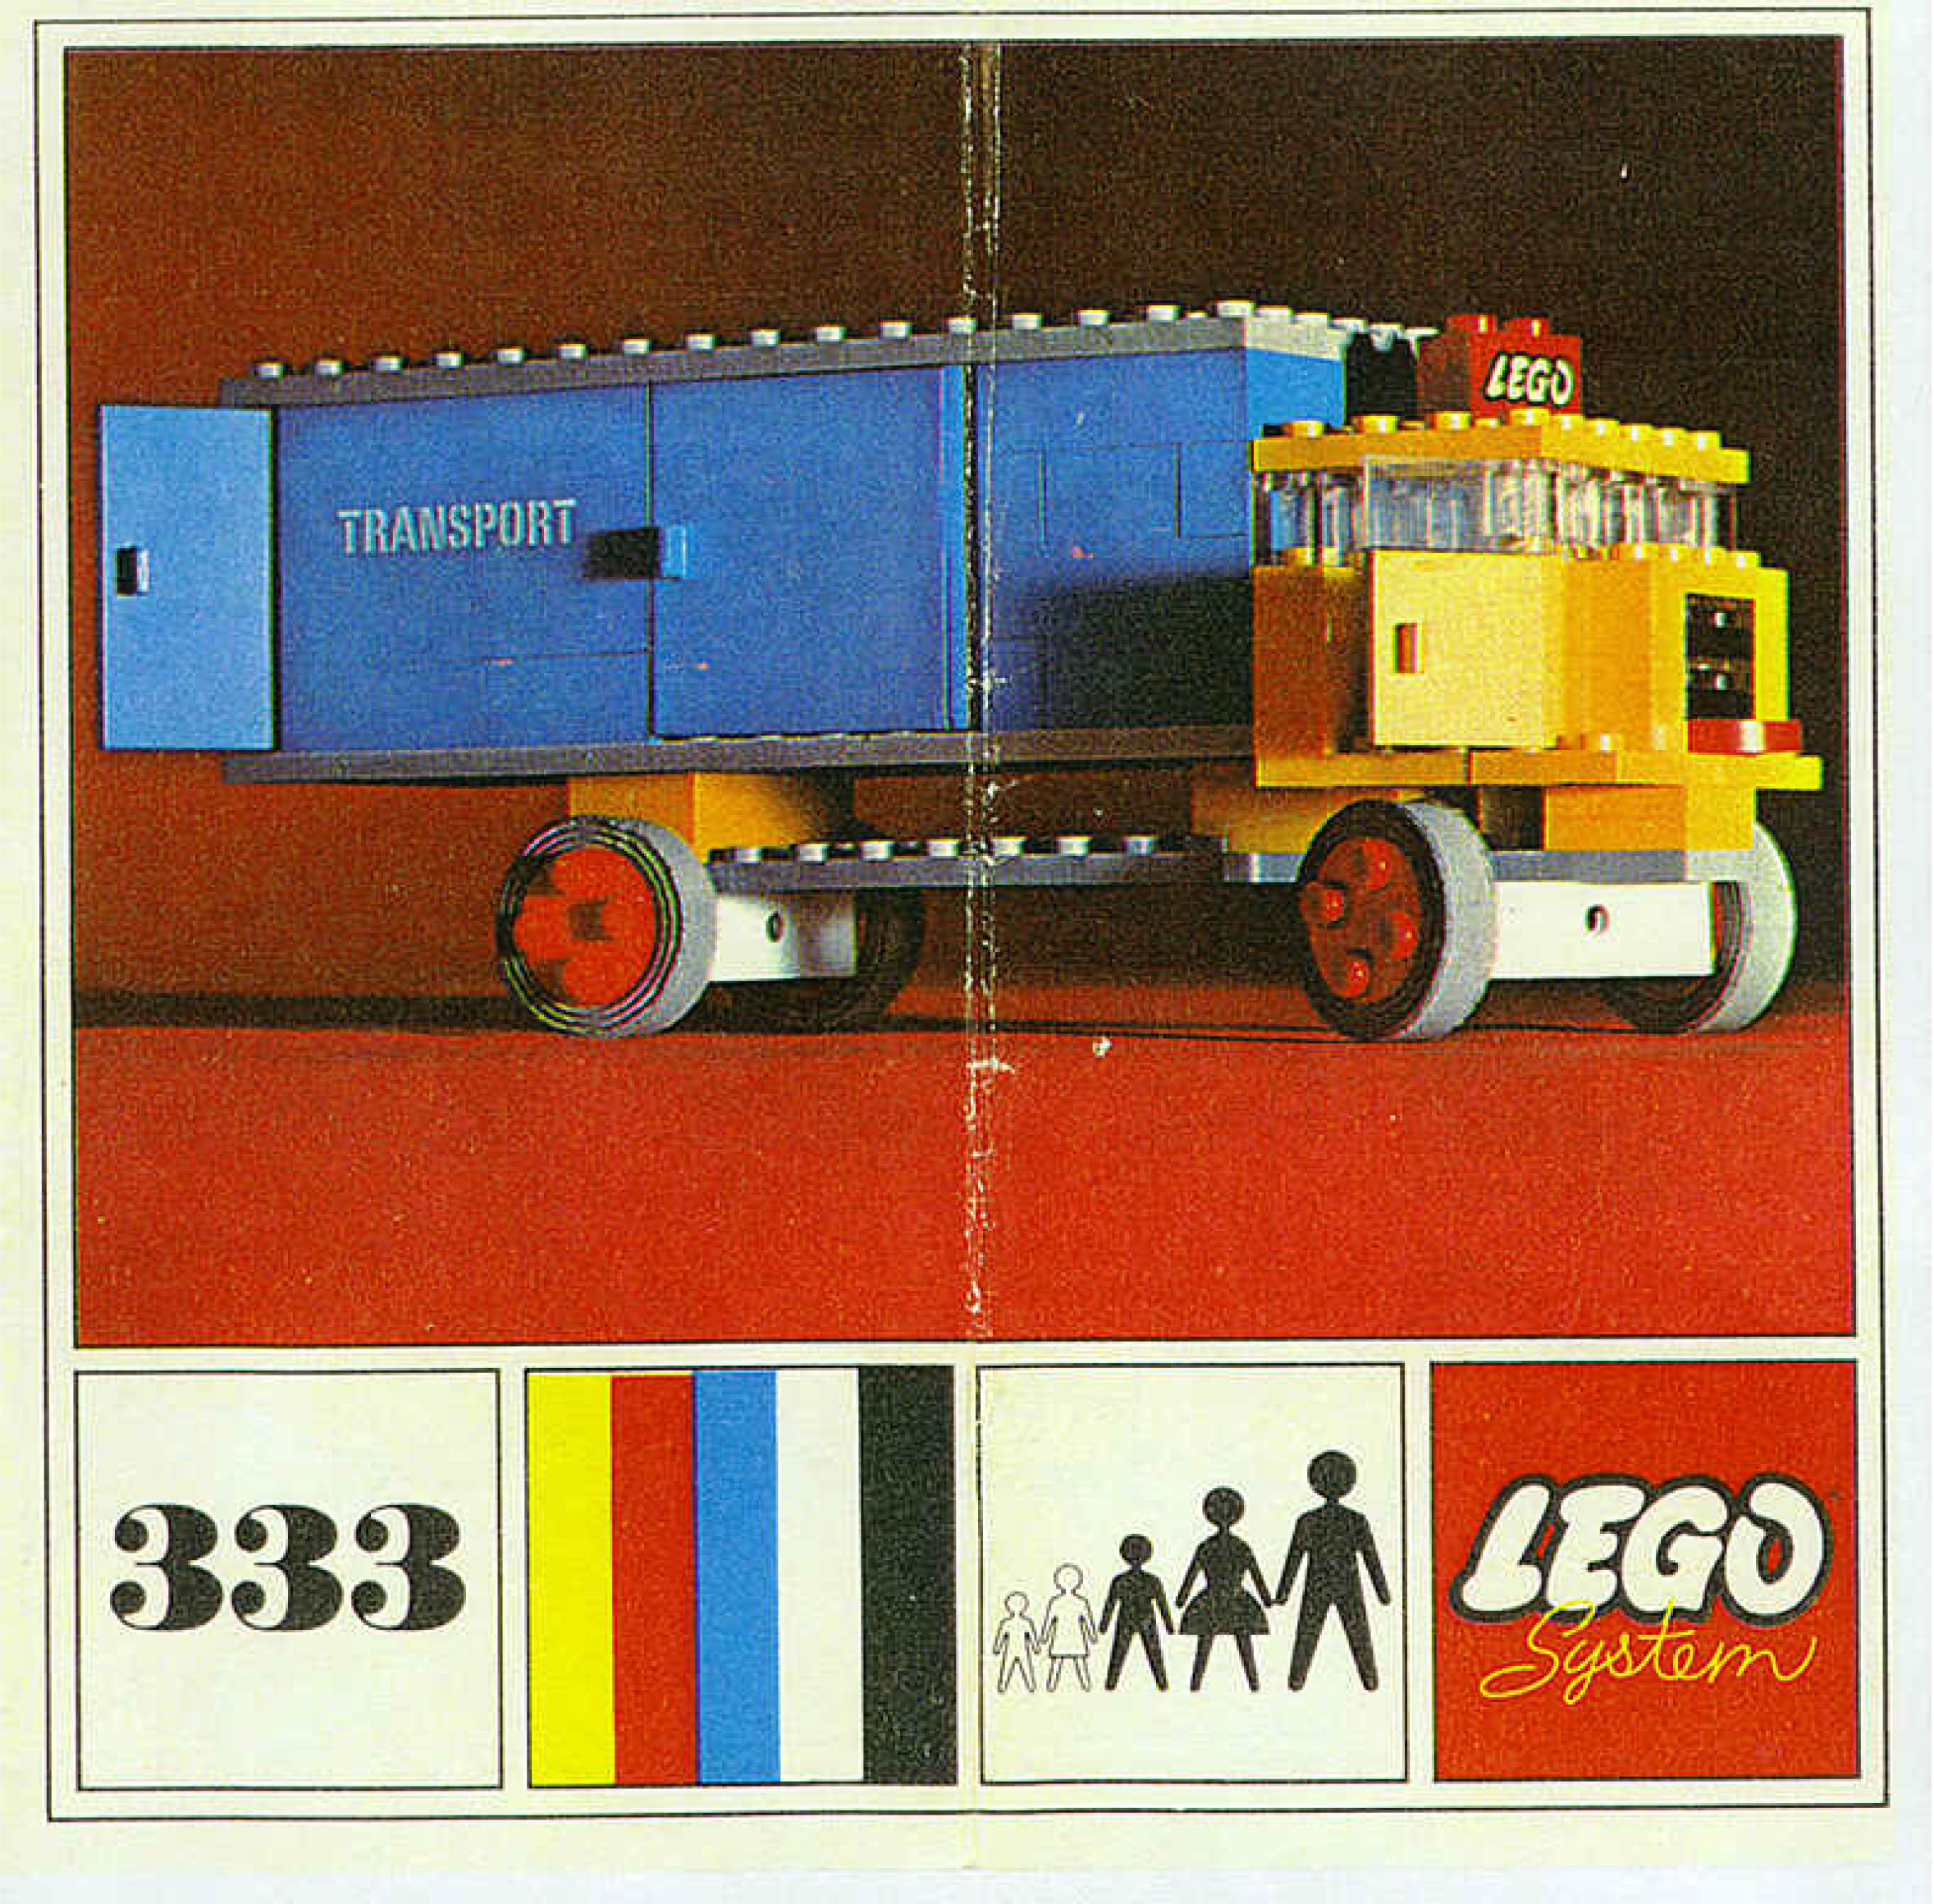 Lego System 333 Year 1967 Lego Building Instructions